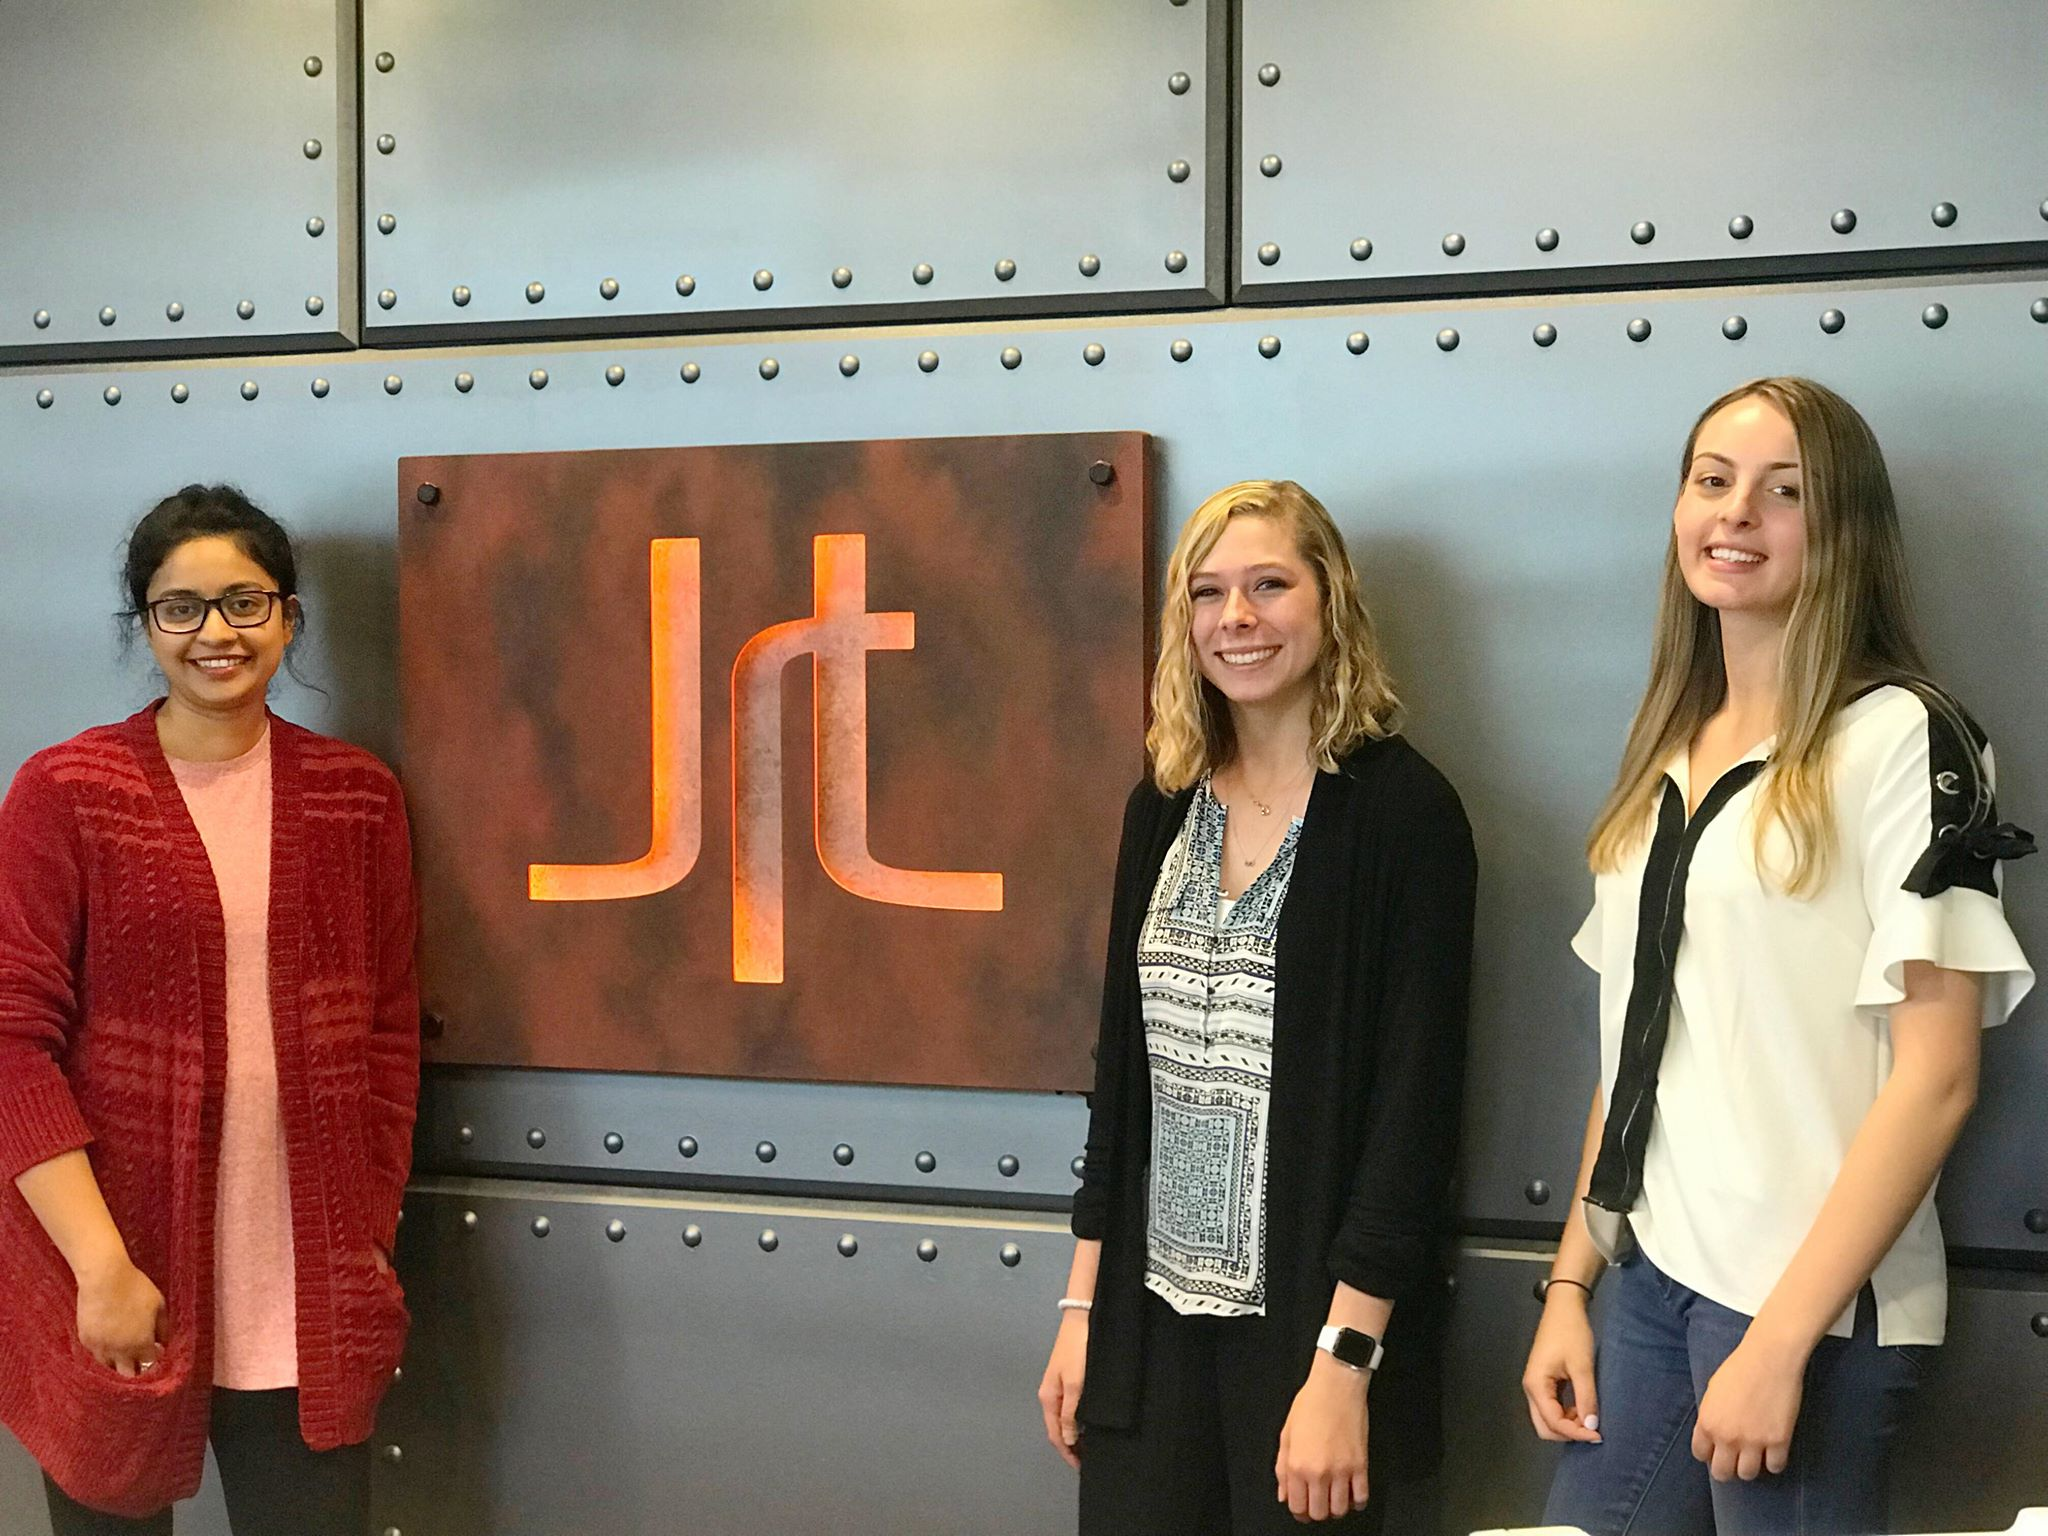 Summer support: Introducing our imaginative interns